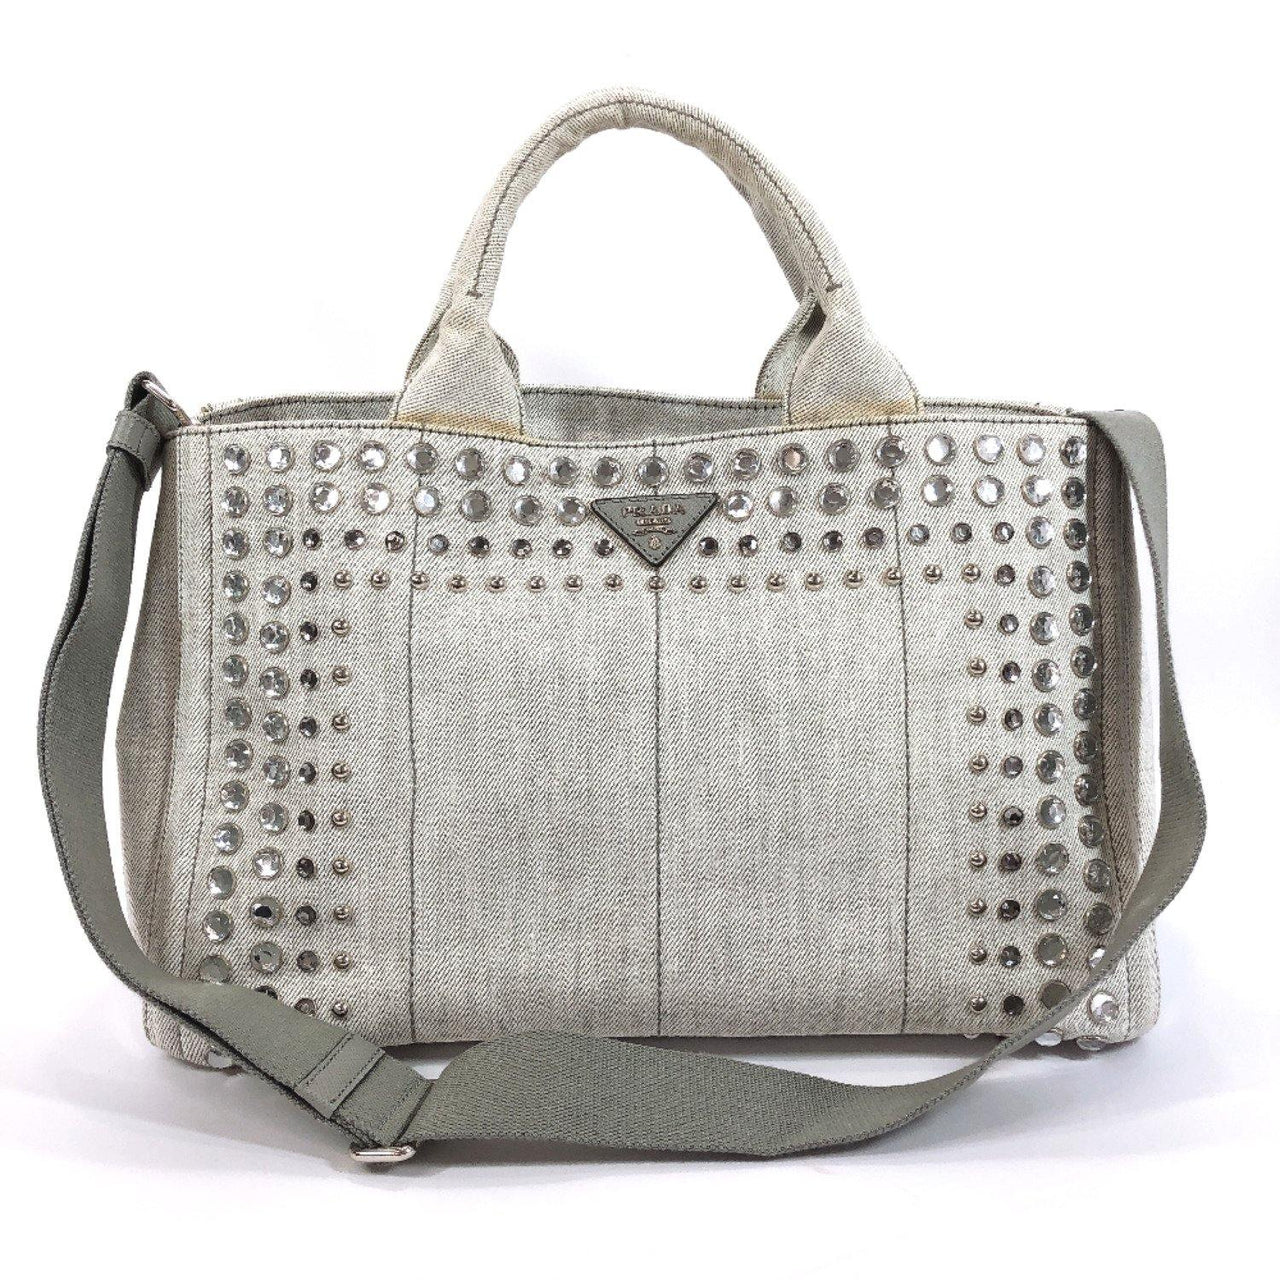 PRADA Tote Bag B26420 Canapa Bijoux Cotton canvas gray Women Used - JP-BRANDS.com